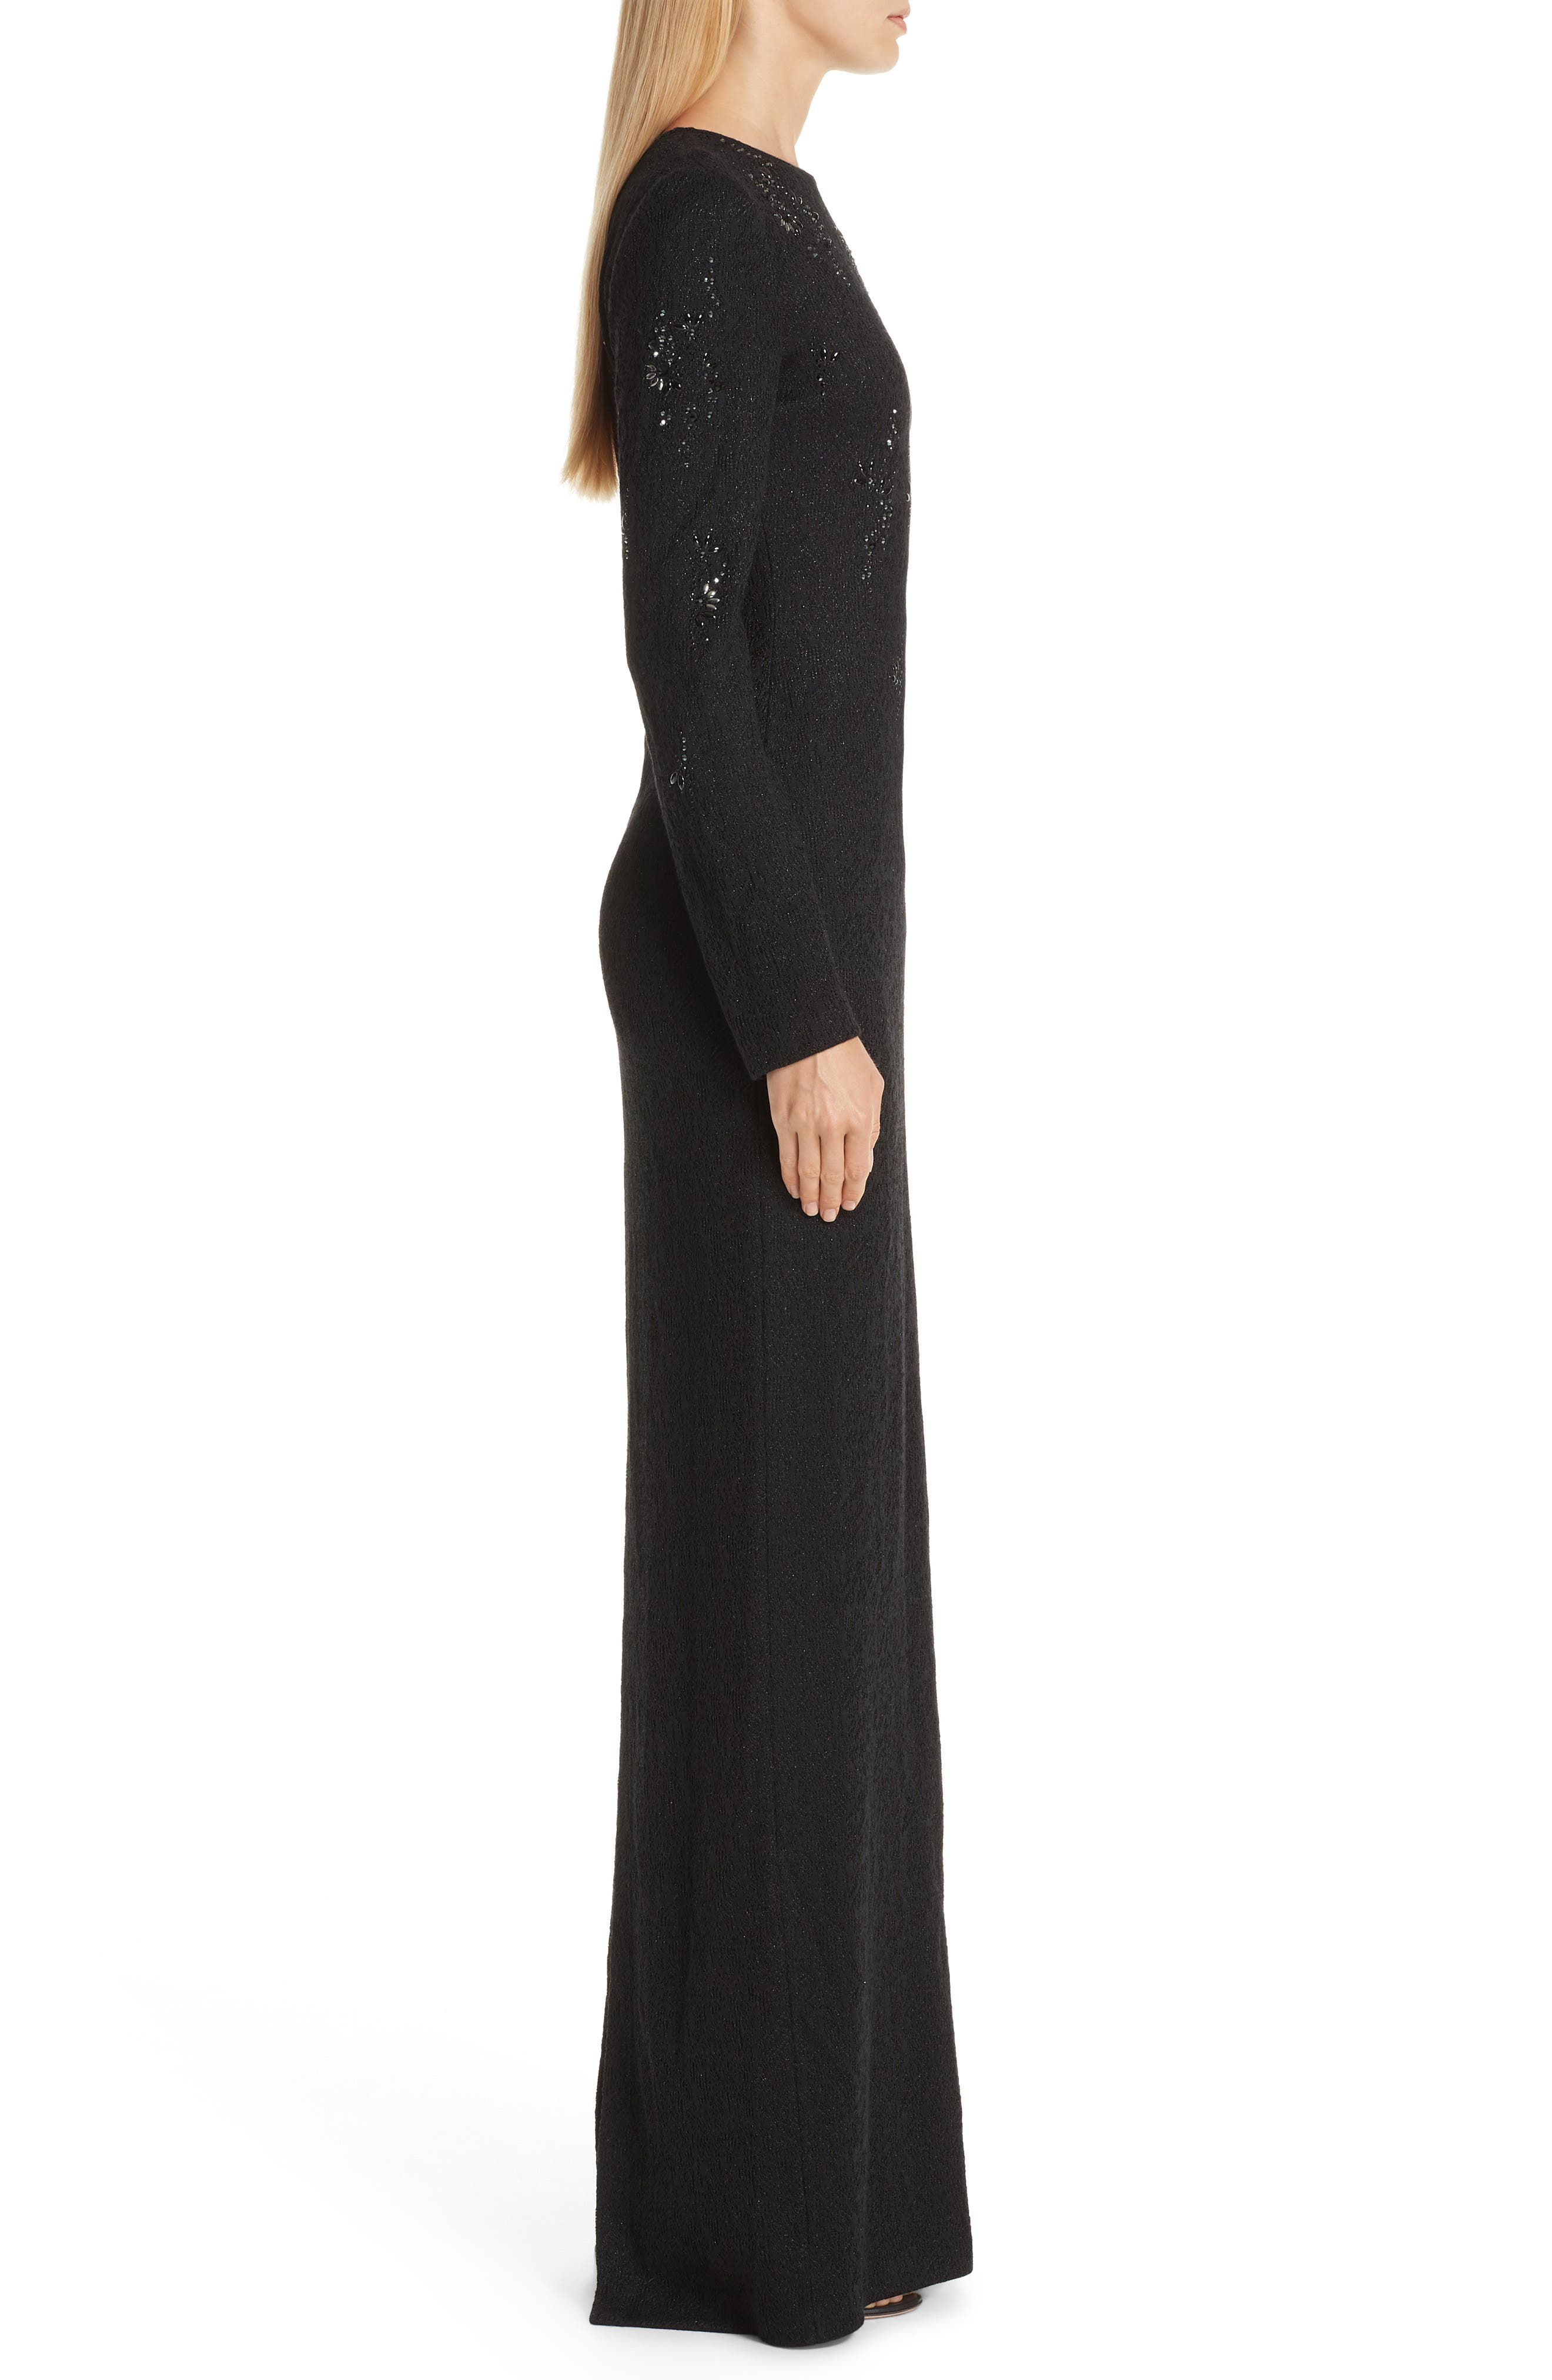 ST. JOHN COLLECTION, Lace Overlay Jacquard Knit Gown, Alternate thumbnail 3, color, CAVIAR